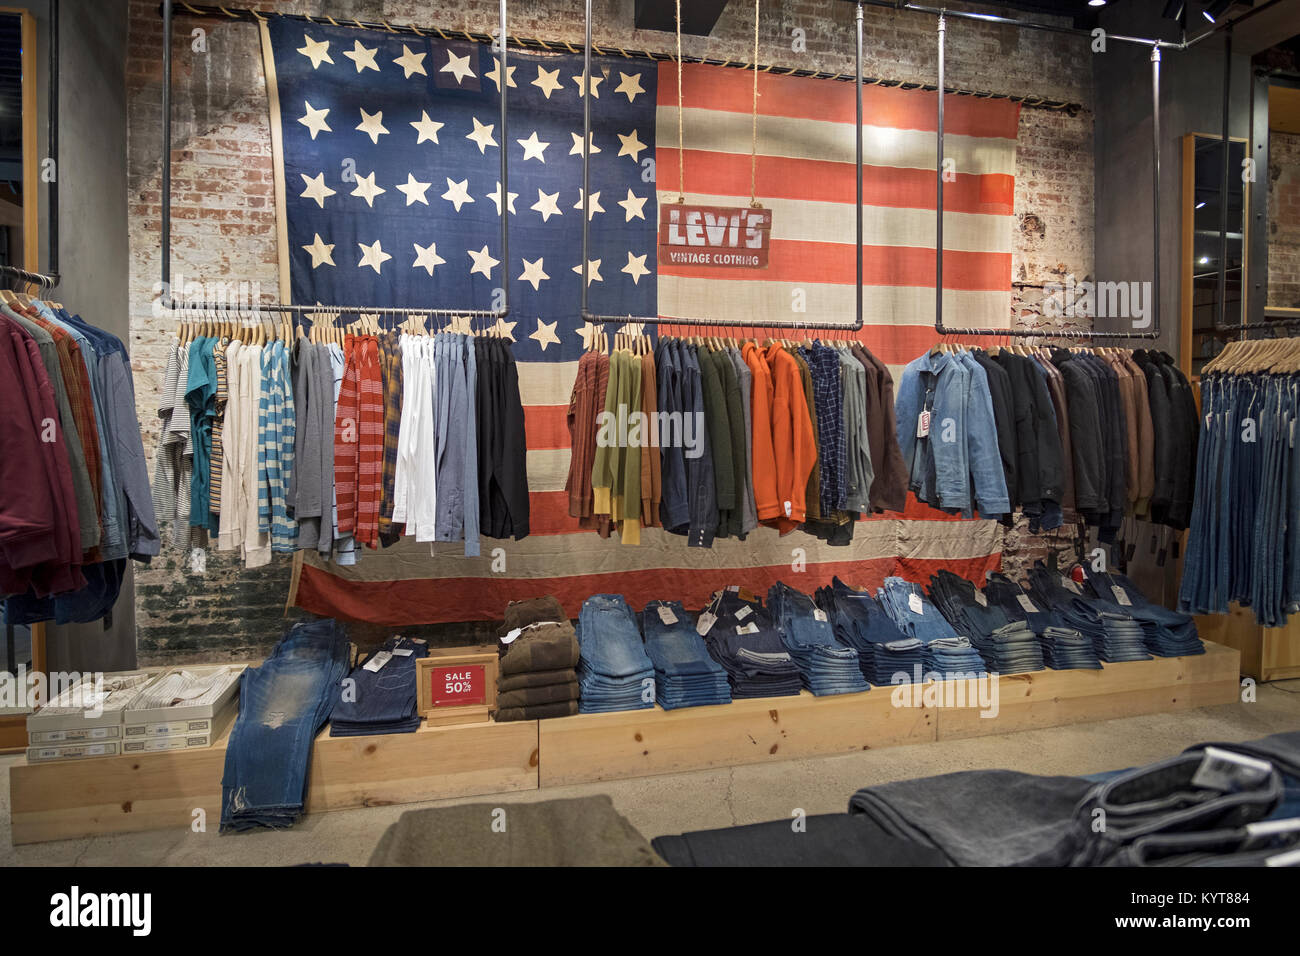 90c7f4f5 The interior of the Levi's store on West 14th Street in the Meatpacking  District of lower